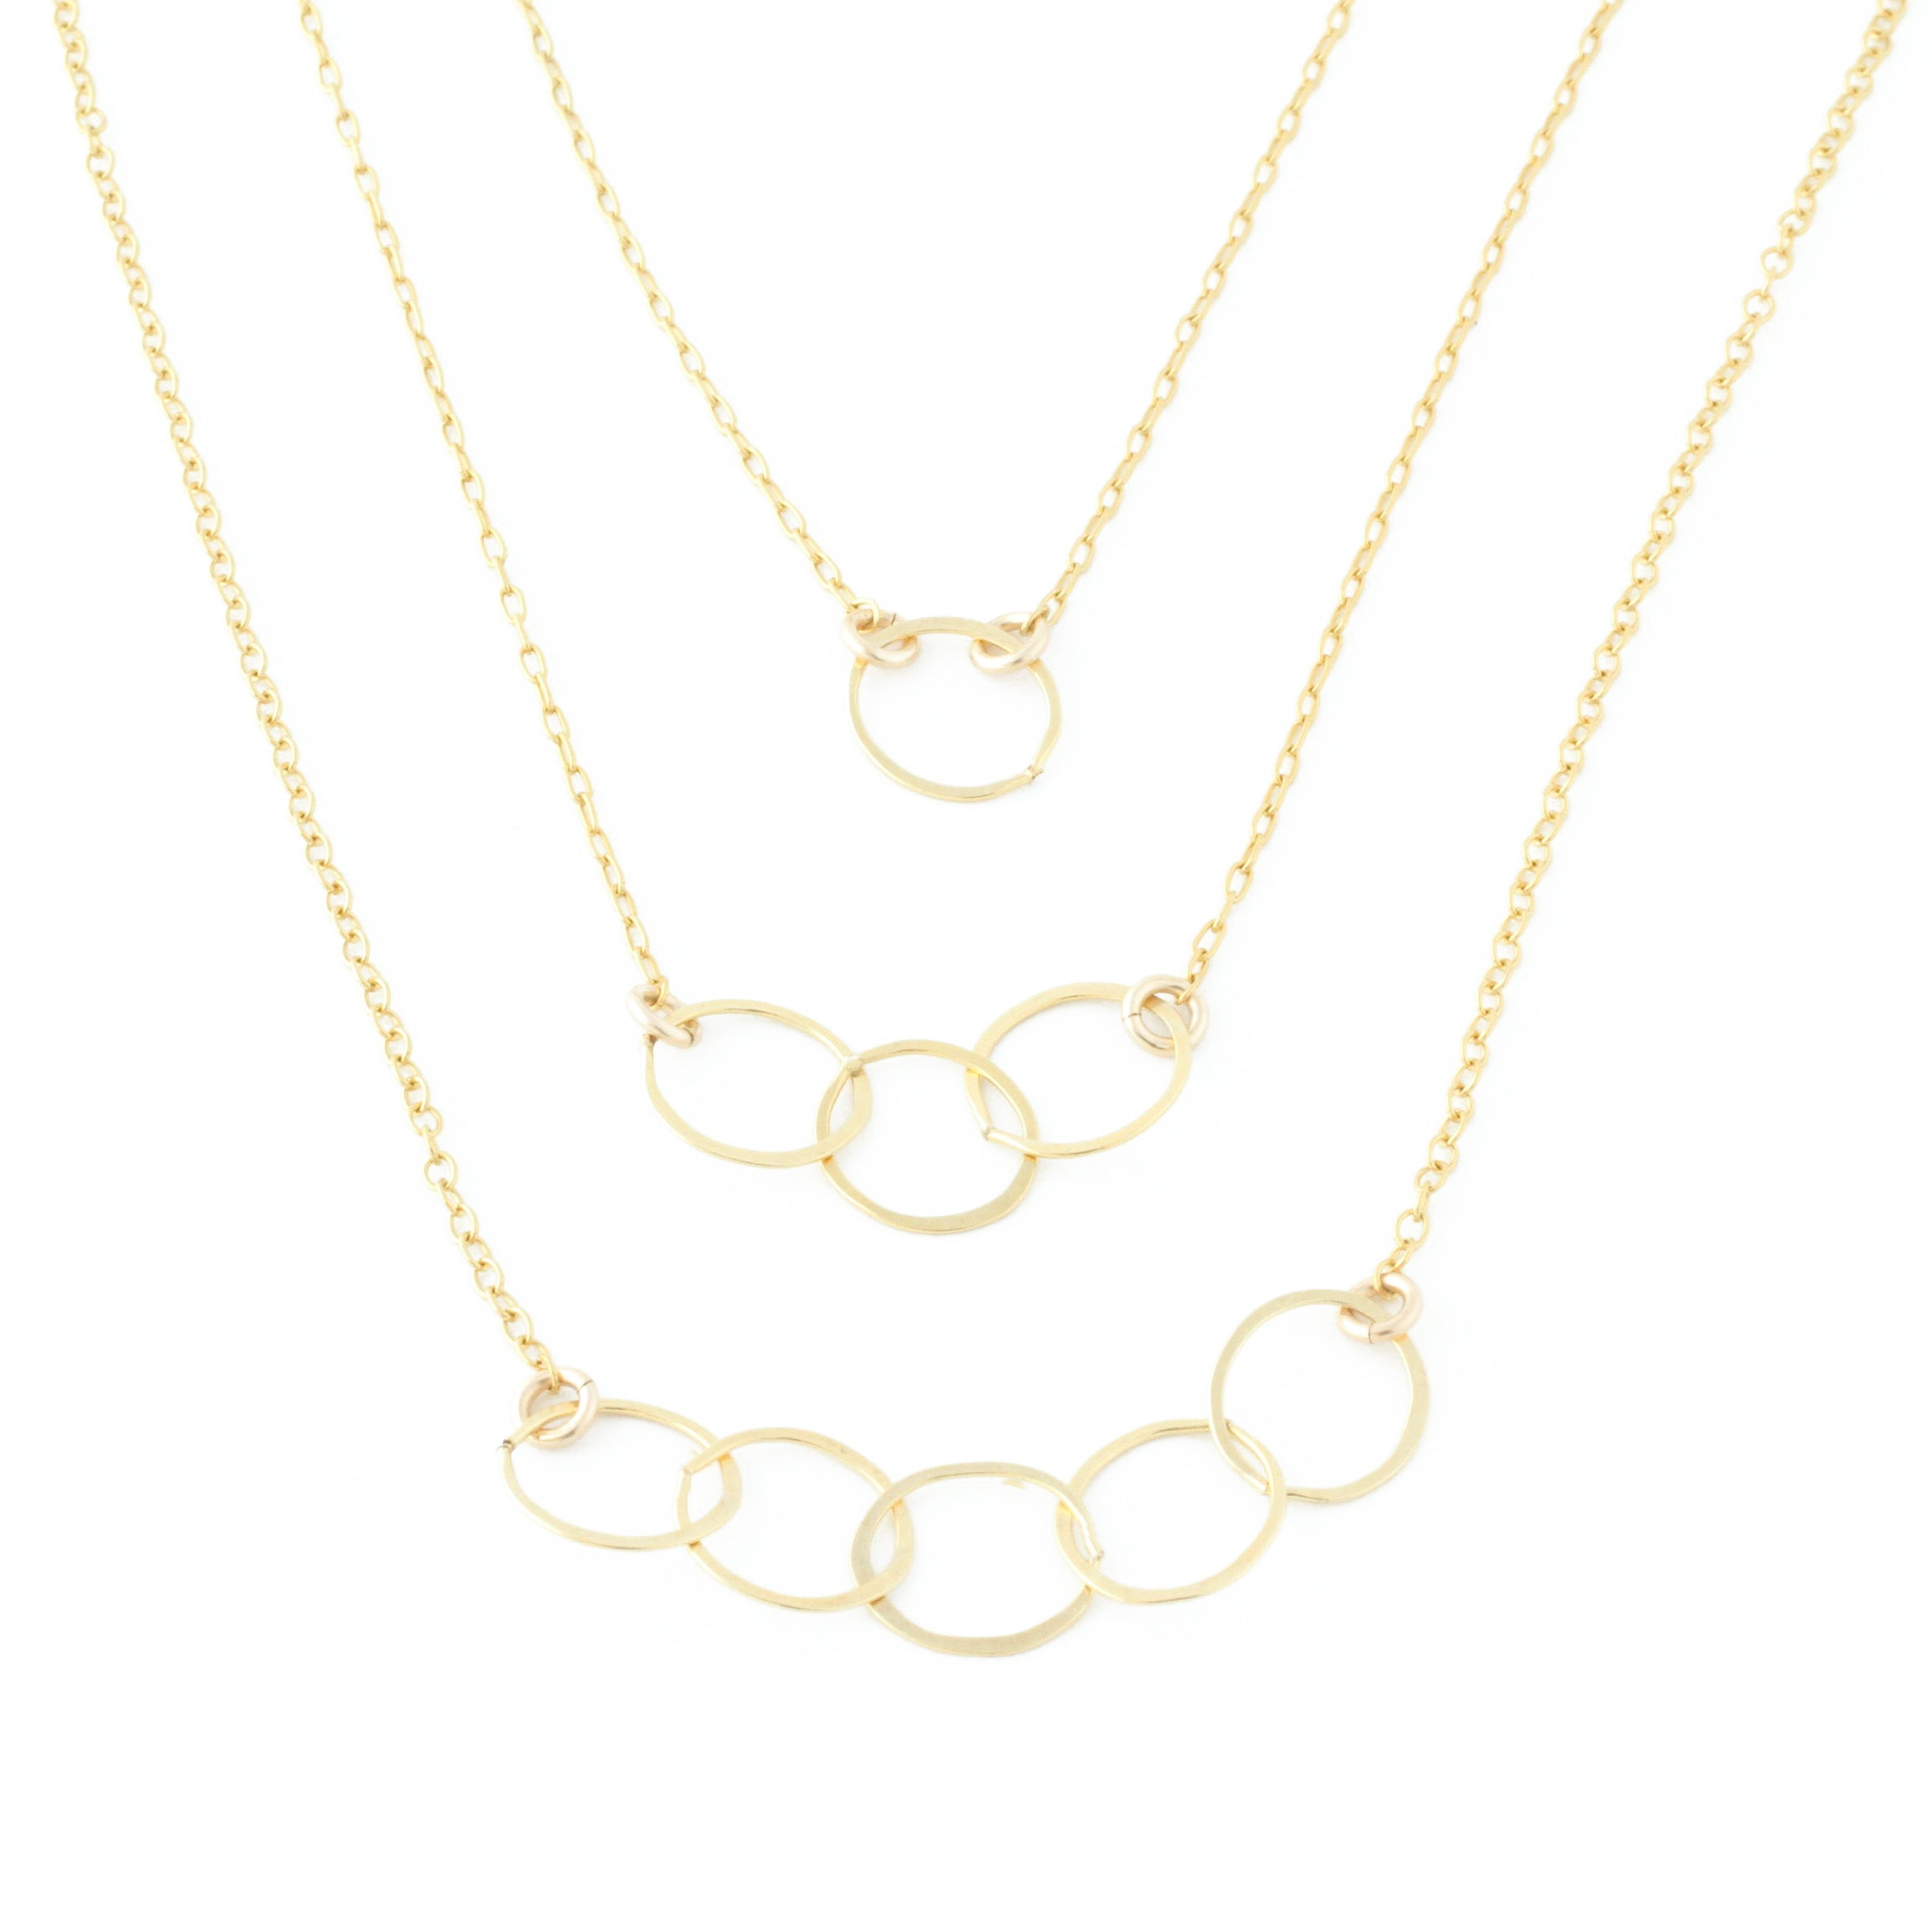 Champagne Necklace (Single)